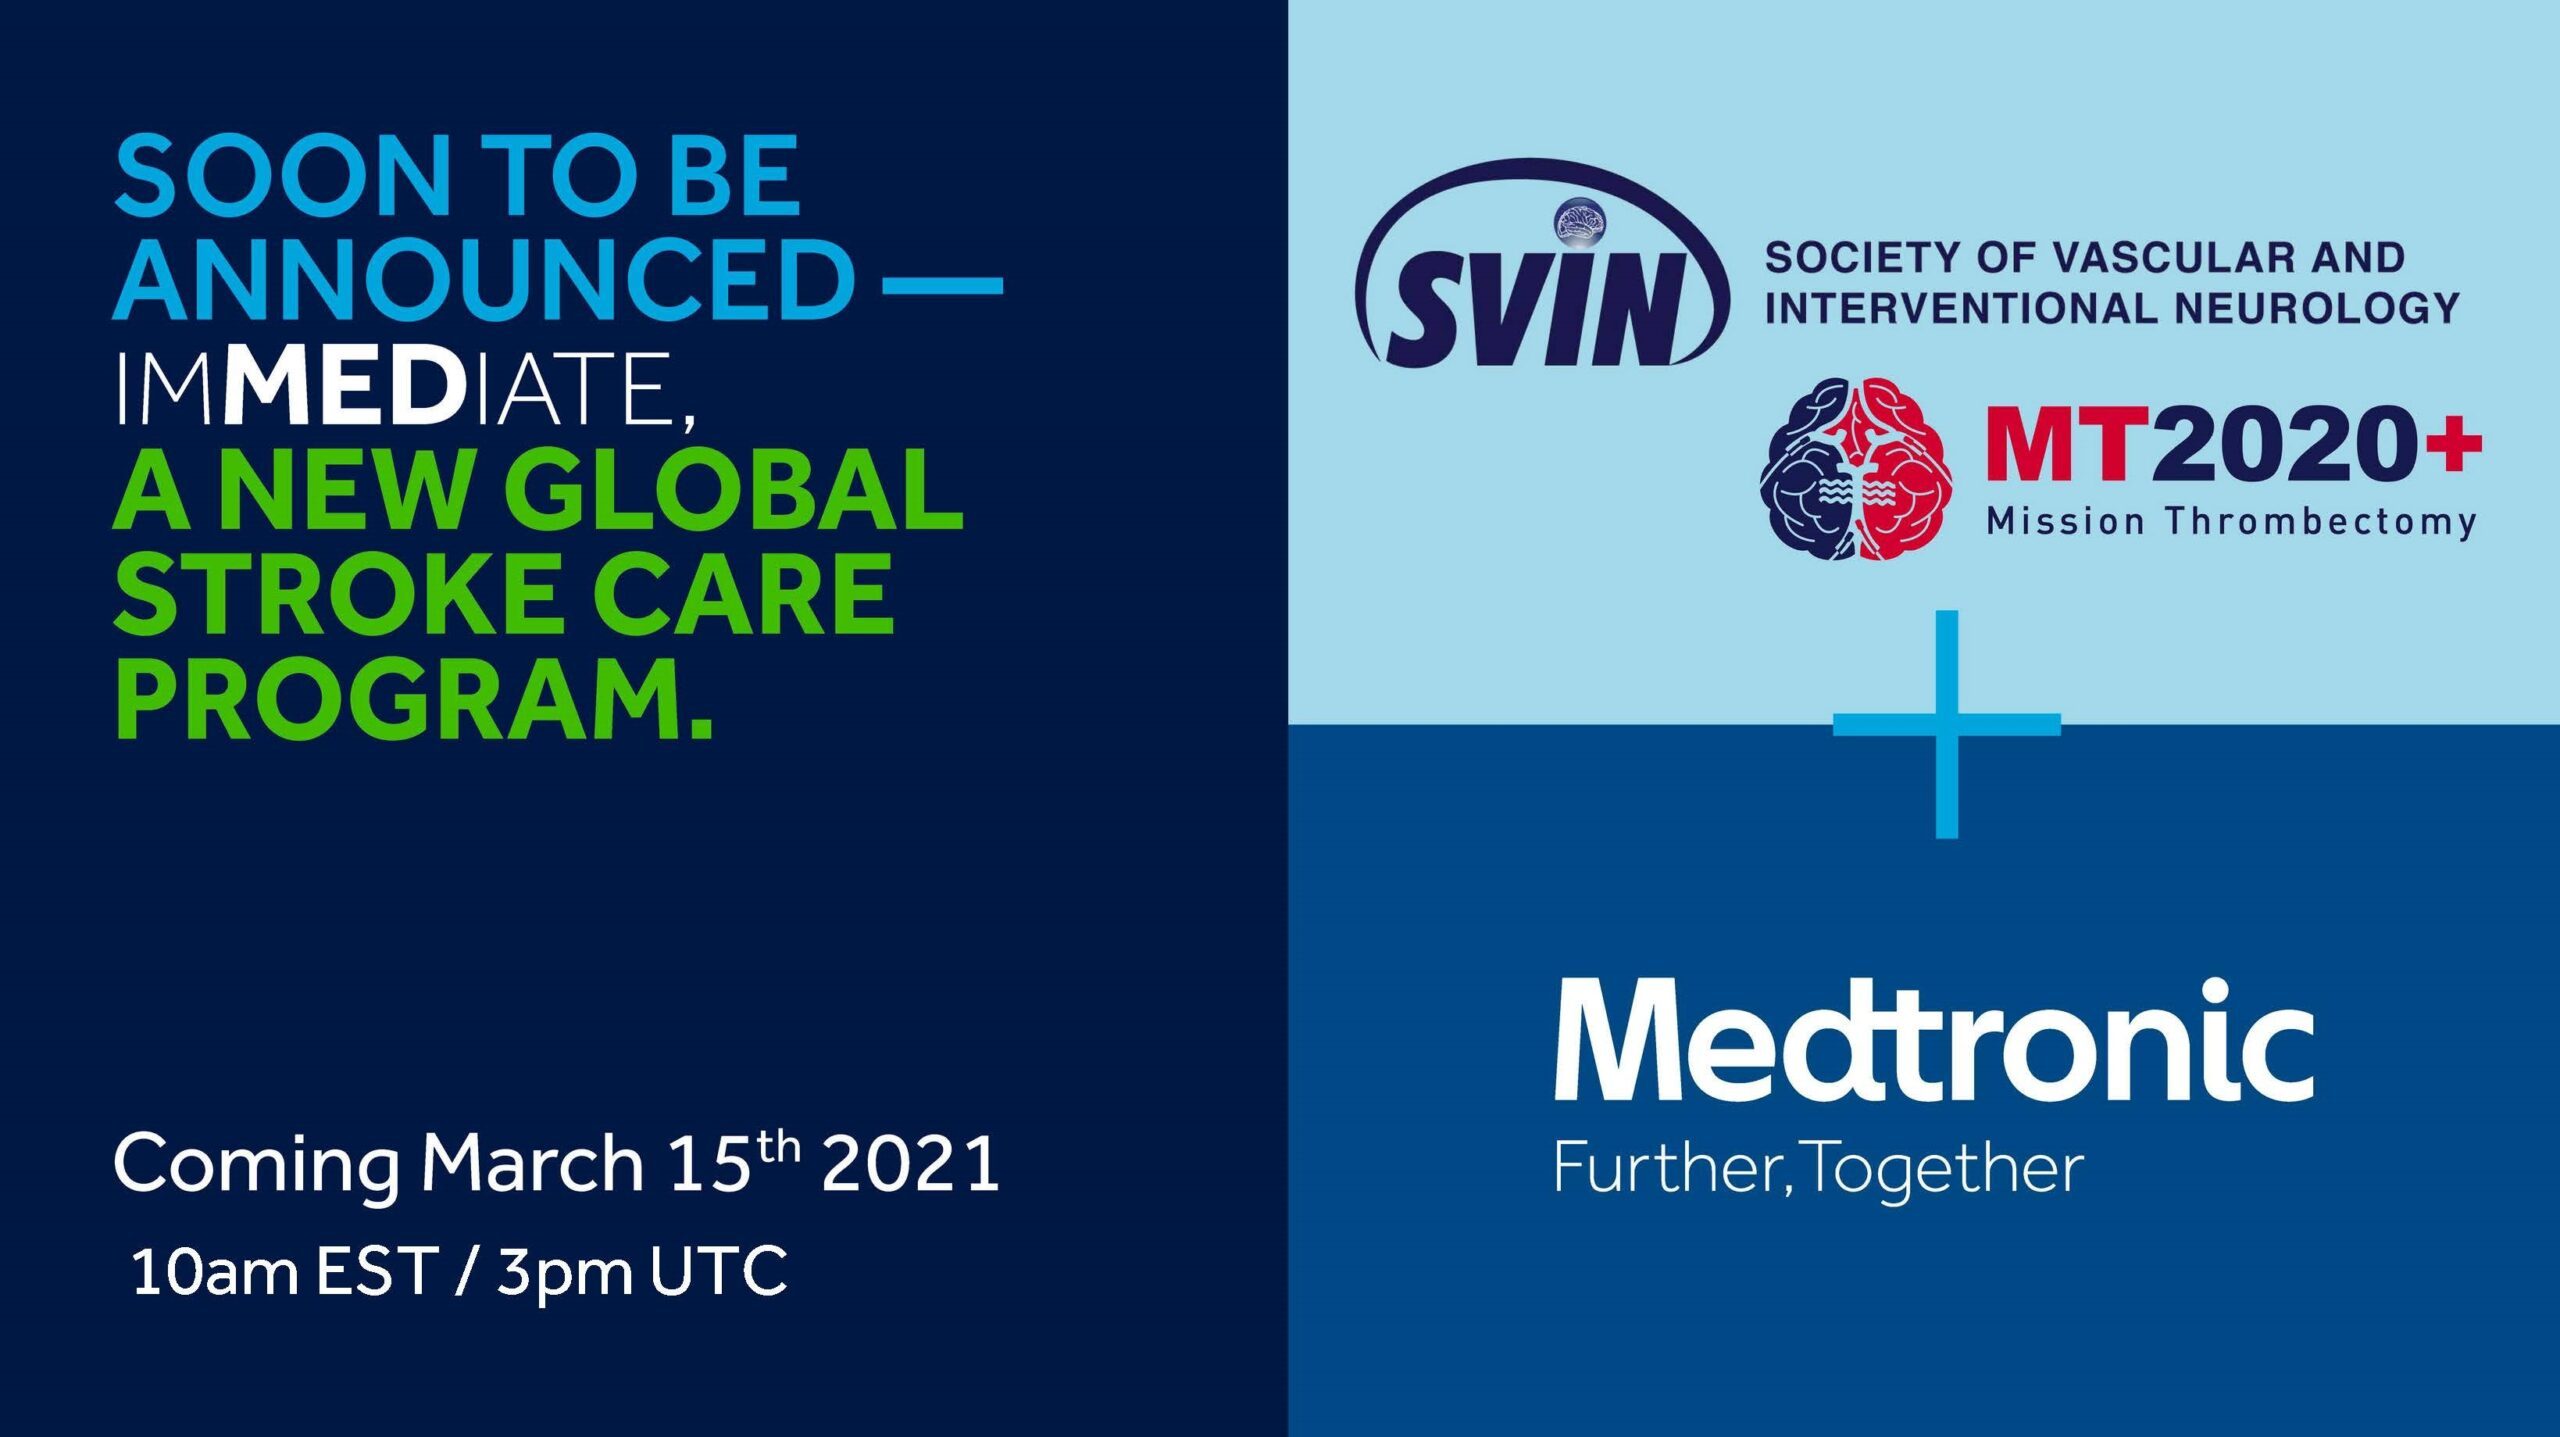 SVIN MT2020+ and Medtronic Enter New Partnership to Advance Stroke Care Globally